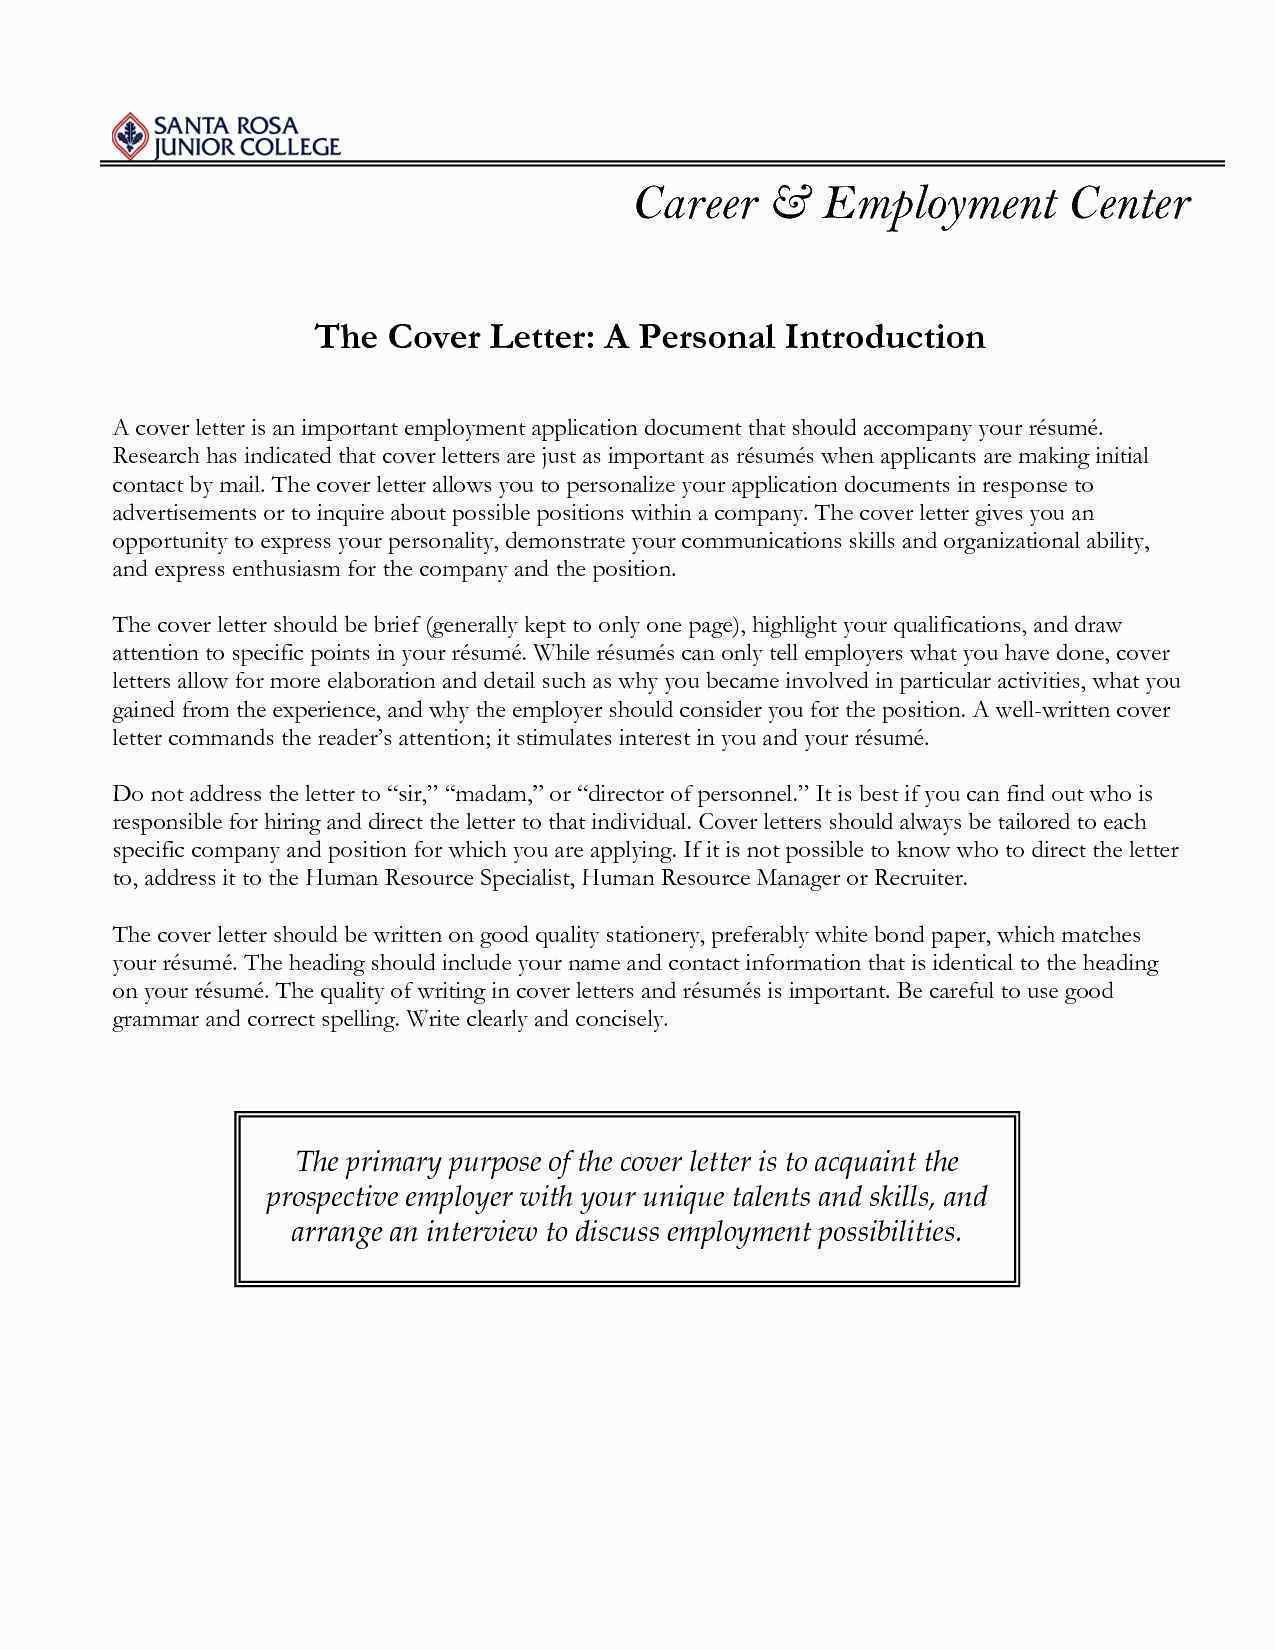 Legal Resumes and Cover Letters - College Graduate Cover Le Refrence Legal Cover Letter Sample Unique